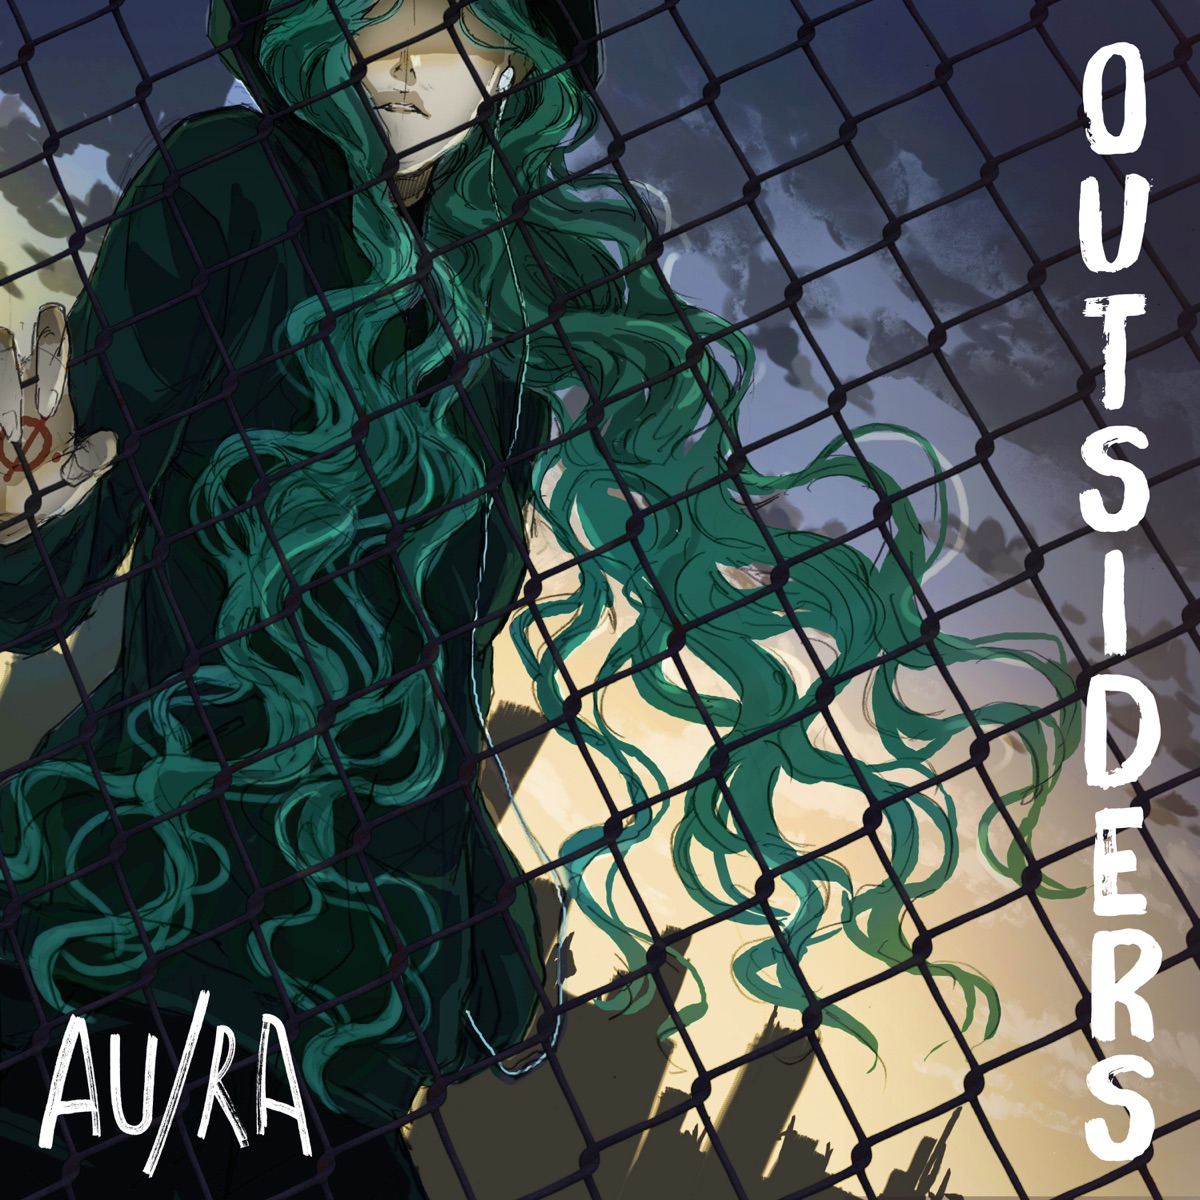 Outsiders - Single Album Cover by Au/Ra